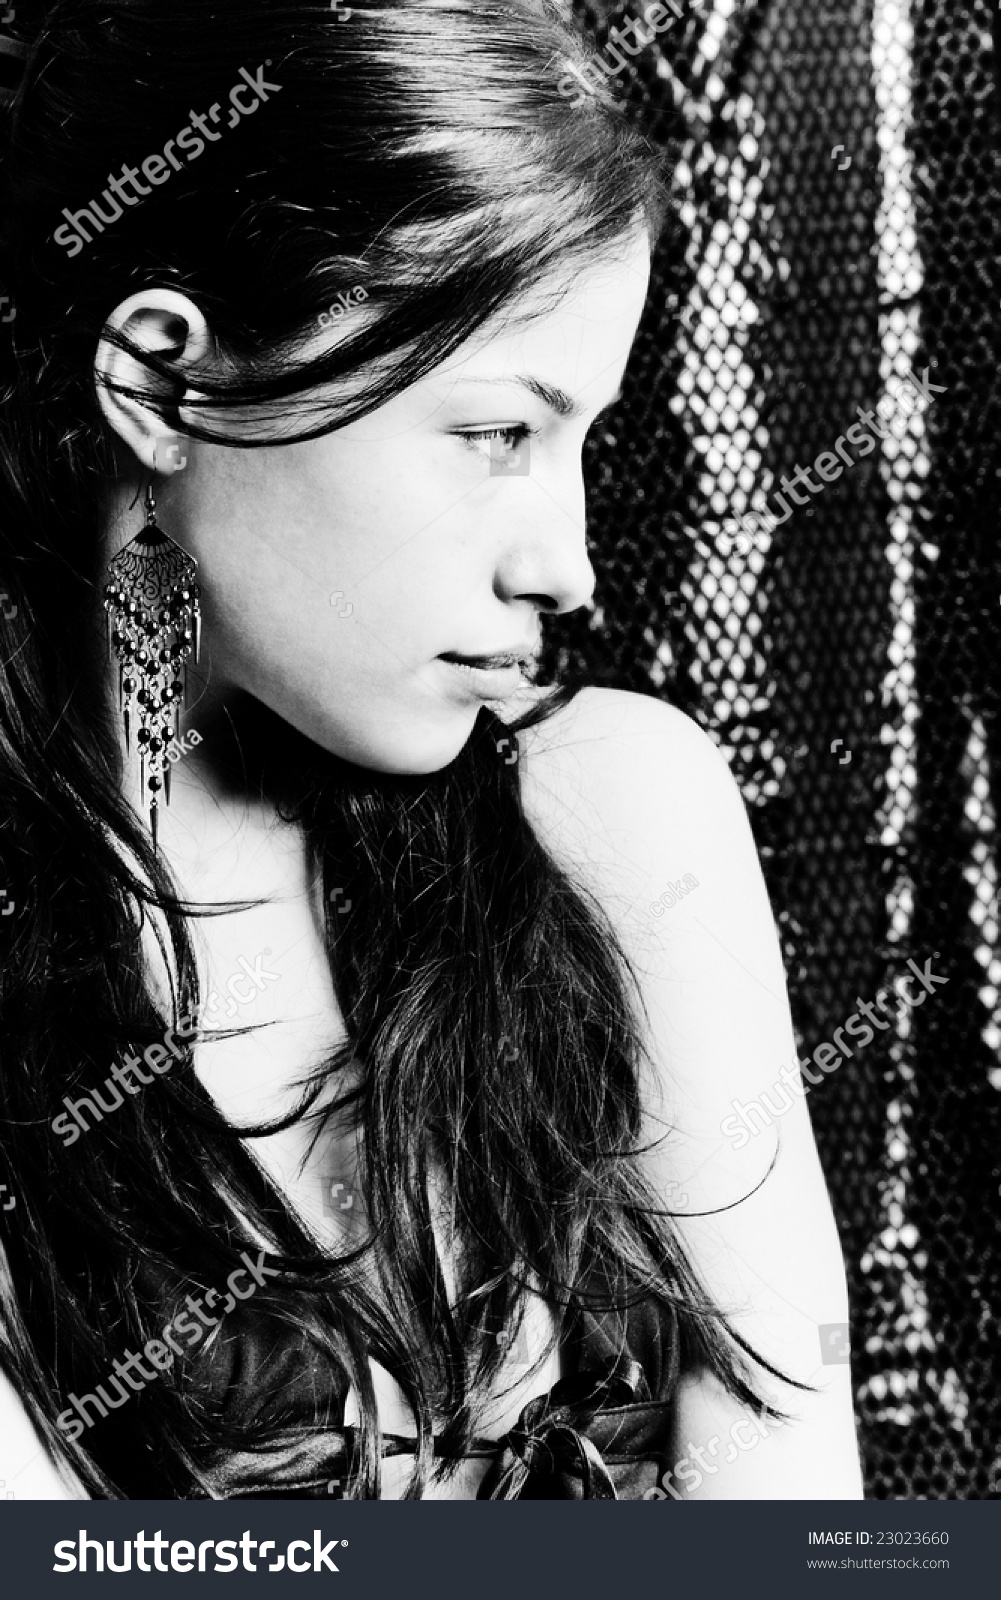 black and white profile portrait of a beautiful woman